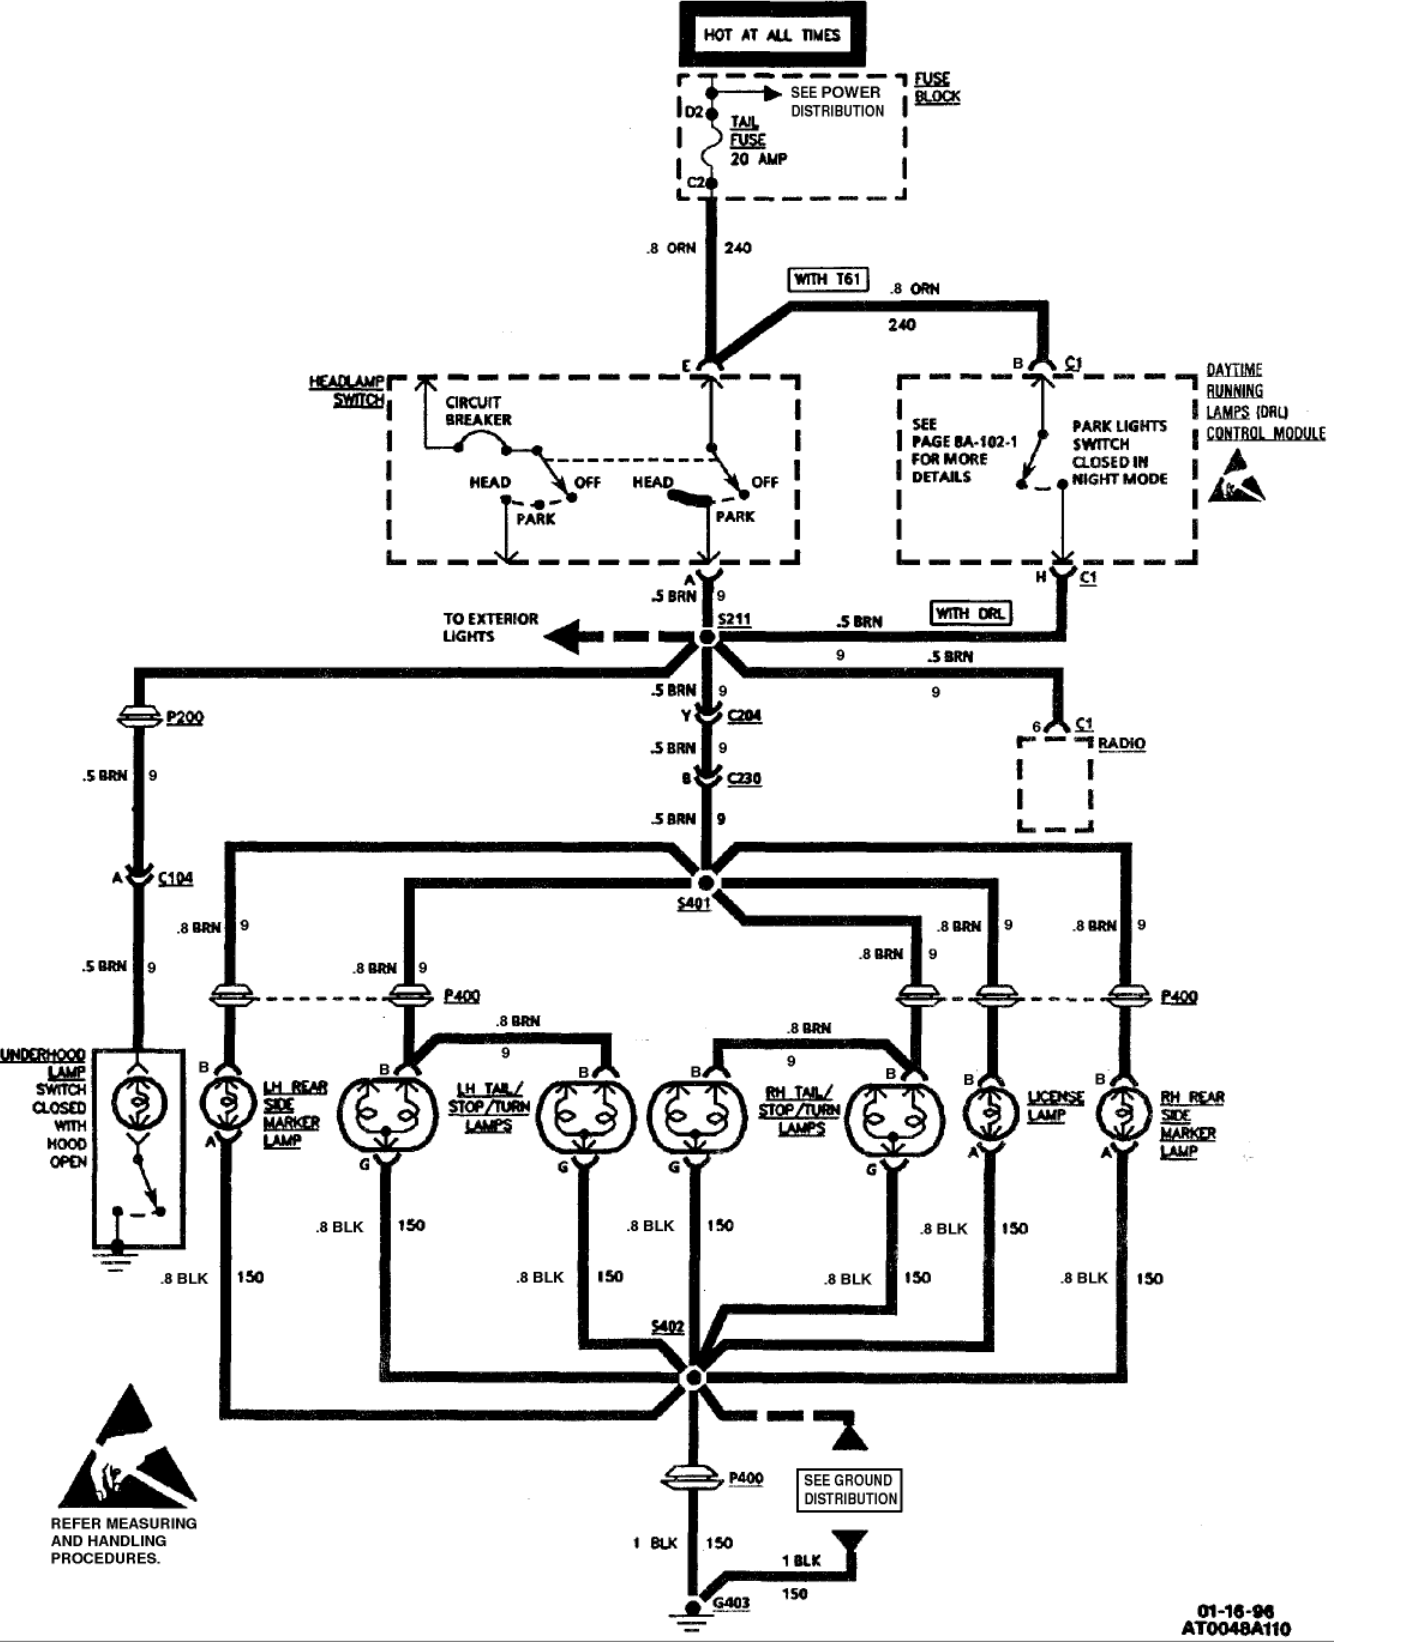 Do You Have A Wiring Schematic For A 1996 Oldsmobile